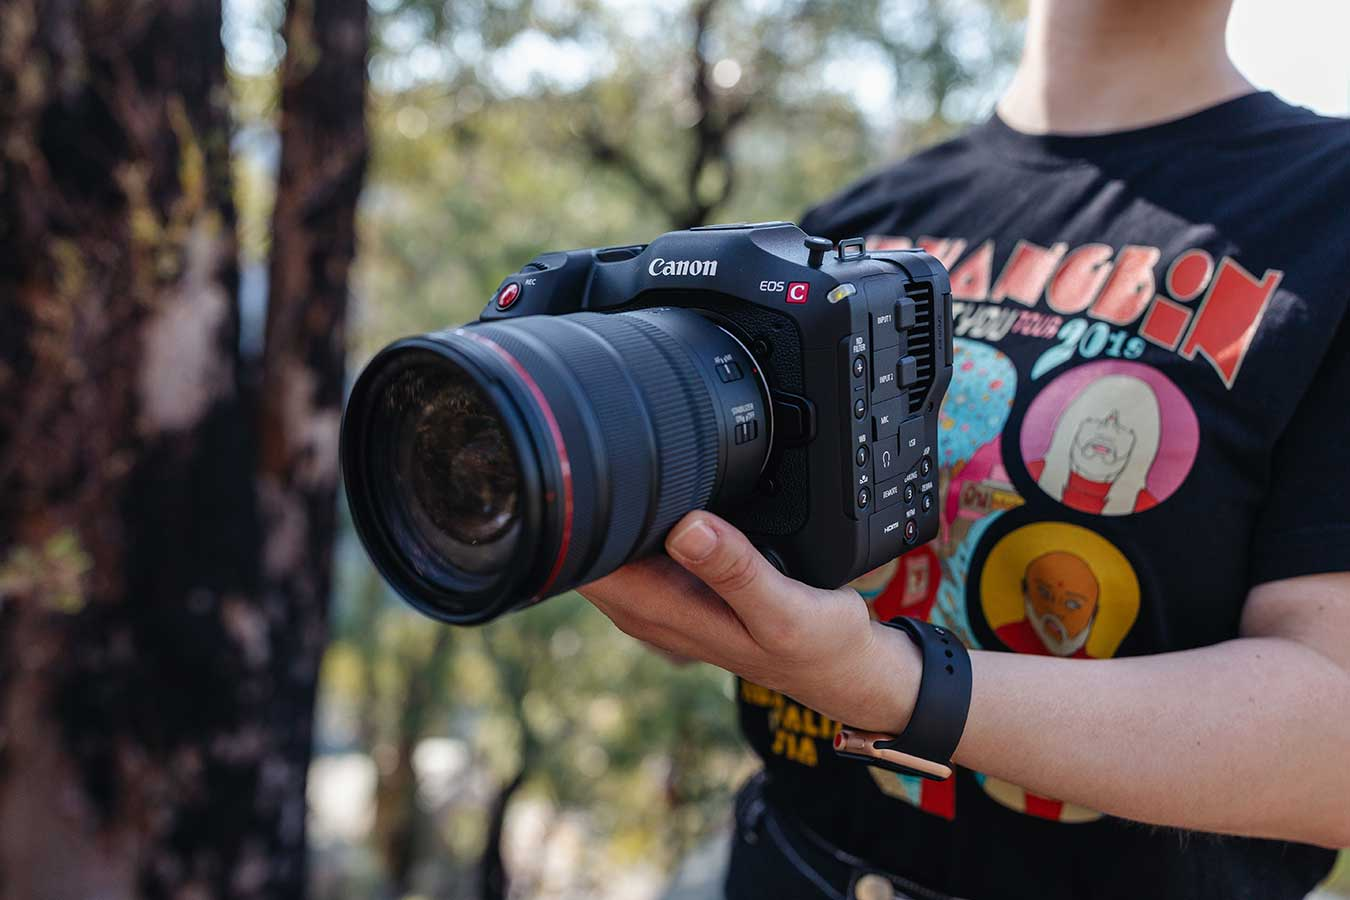 canon-eos-c70-handheld-by-woman-with-lens